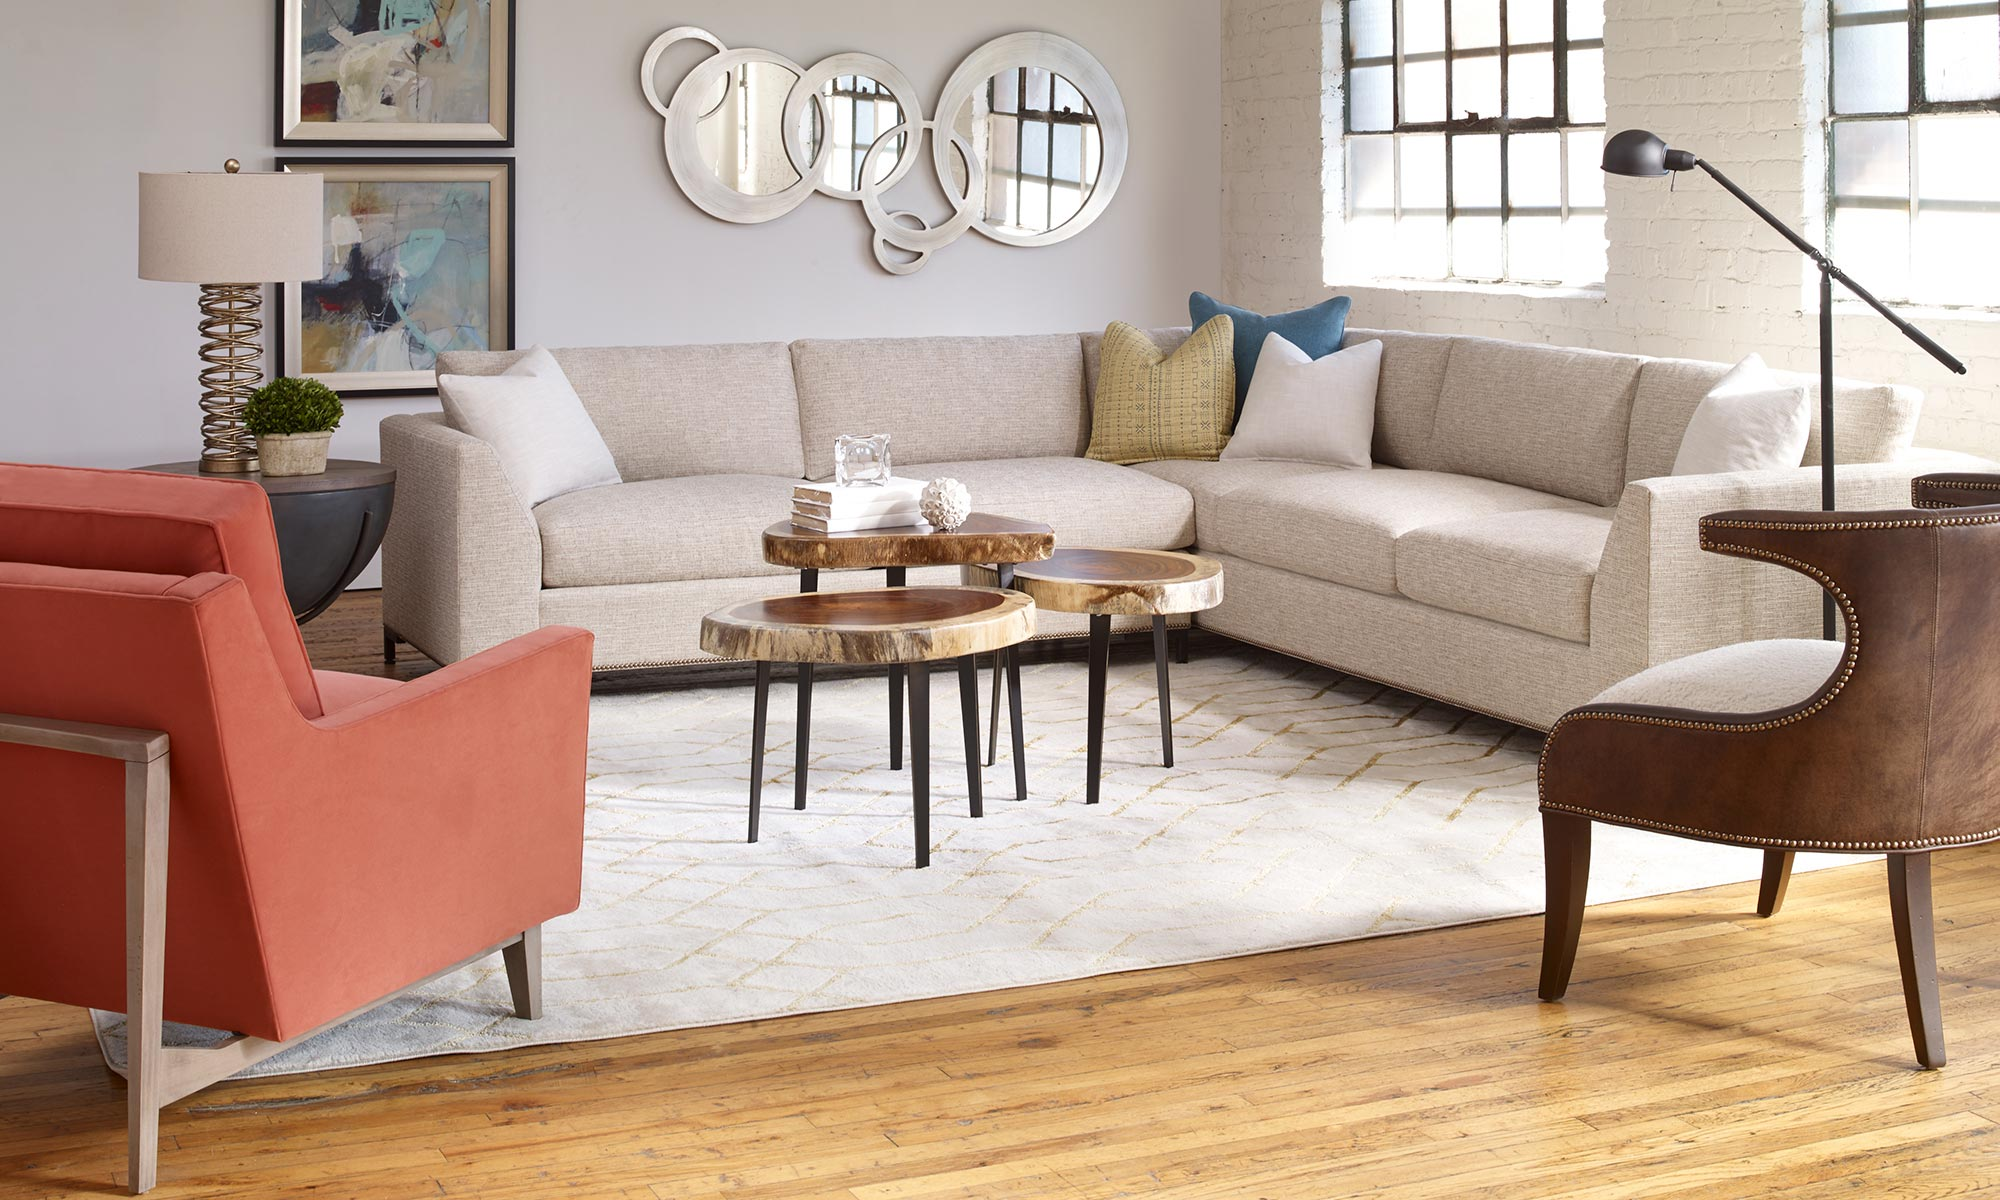 living room style lounge area with sectional chairs side table and lamps